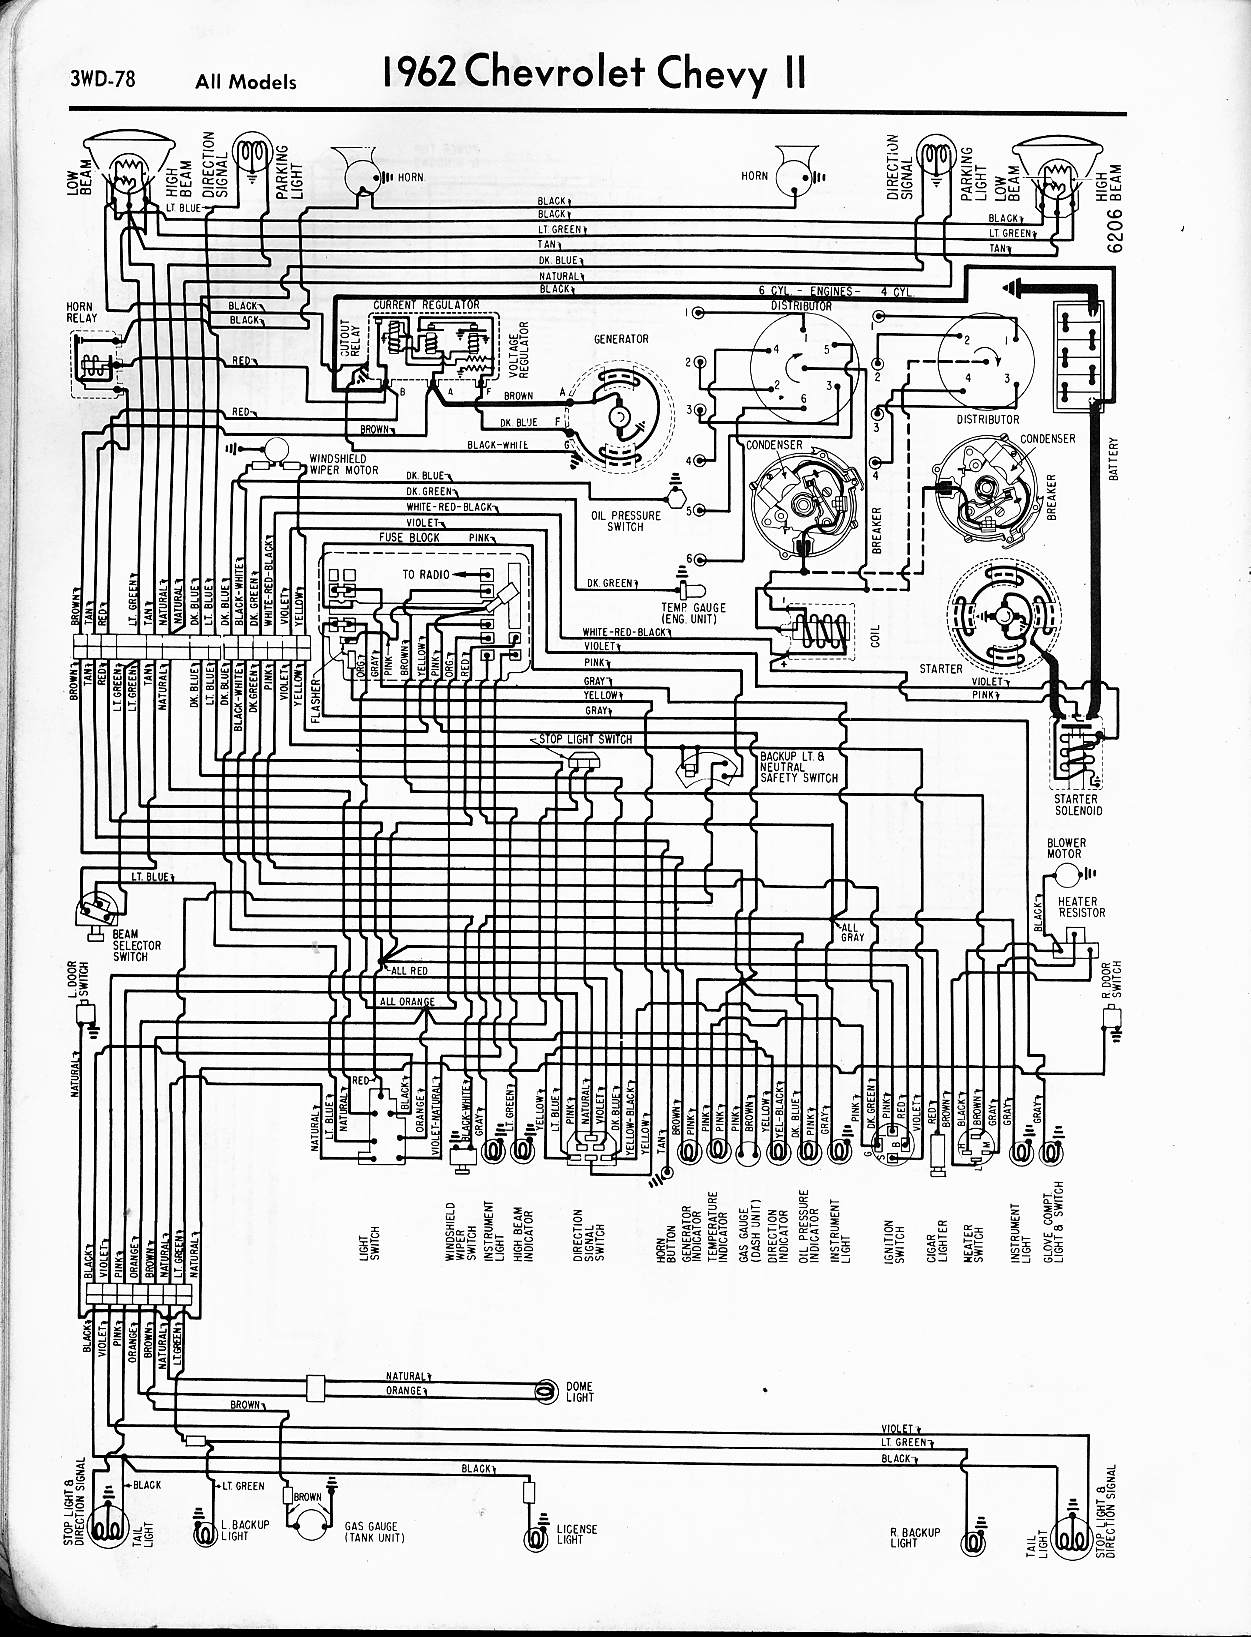 MWireChev62_3WD 078 57 65 chevy wiring diagrams 1962 impala wiring diagram at virtualis.co